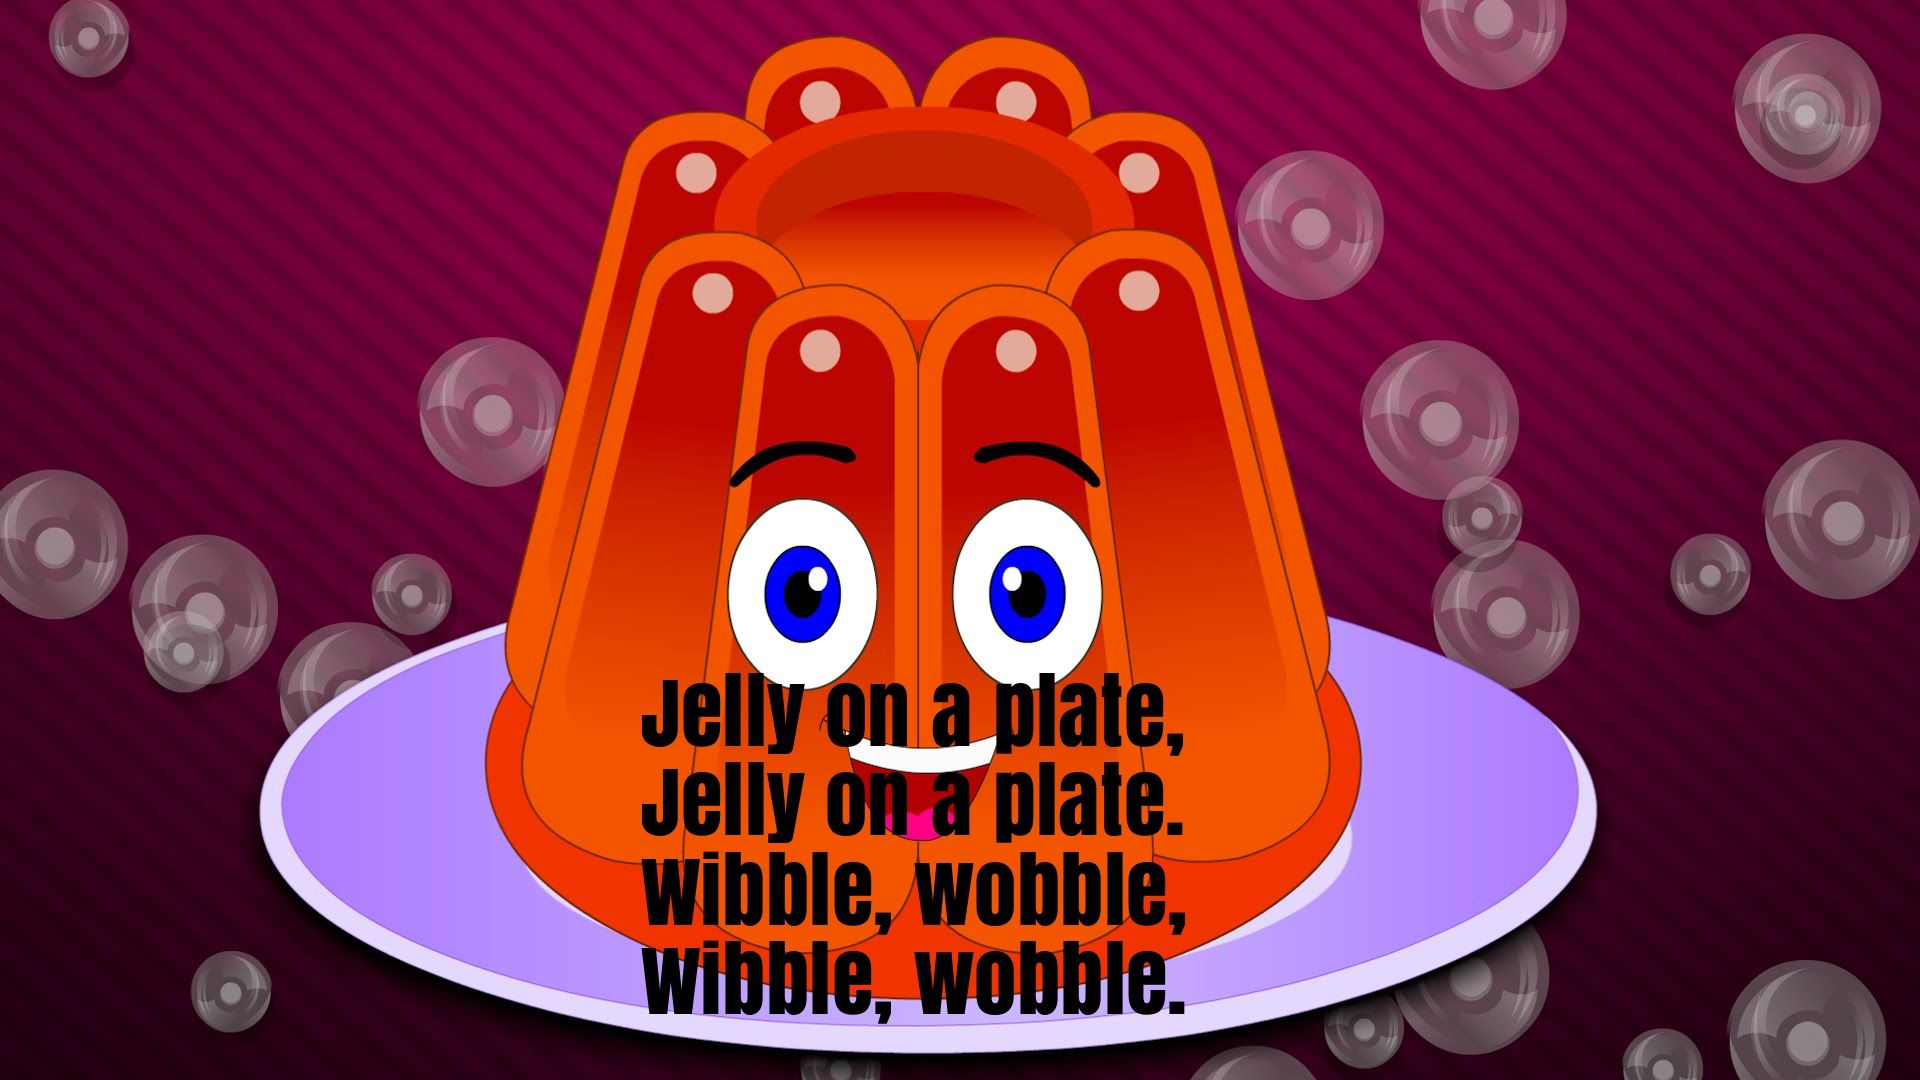 Jelly On The Plate Nursery Rhyme Lyrics Jelly Wallpaper Jelly On A Plate Hd Cool Wallpapers